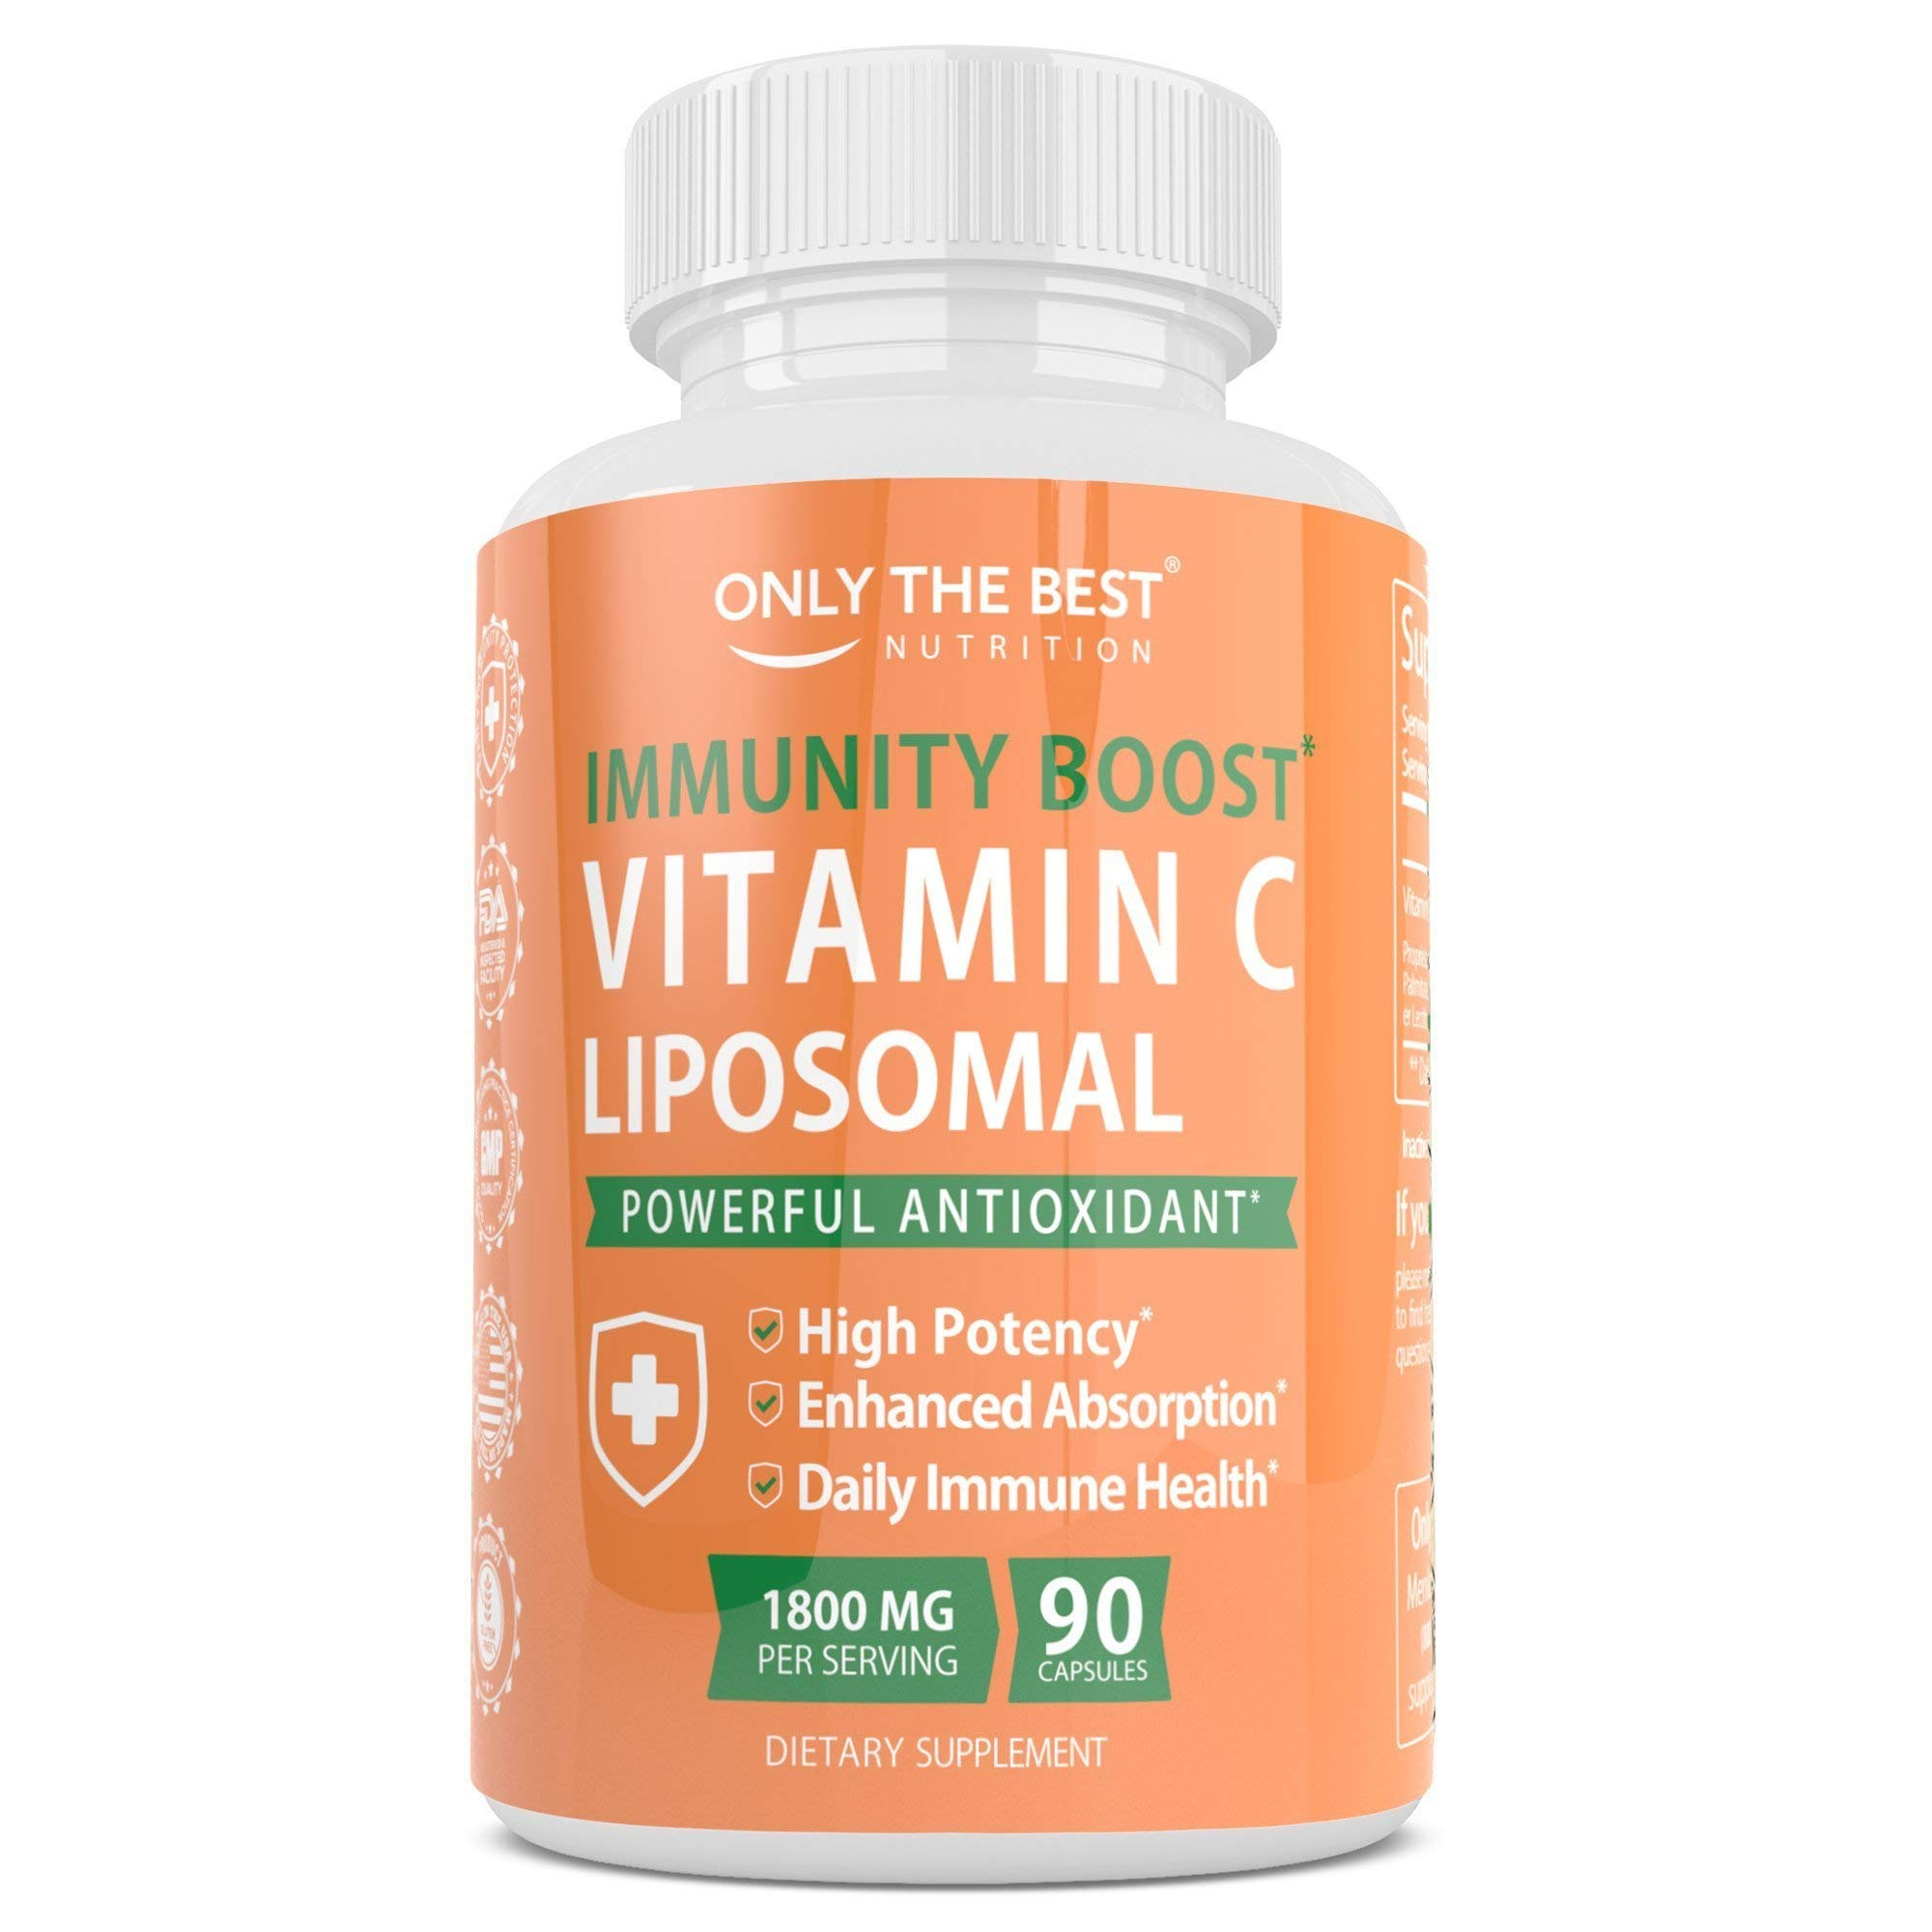 Only The Best Liposomal Vitamin C Buffered 1800mg - Immune System & Collagen Booster, High Absorption Fat Soluble VIT C, Anti Aging Vitamins, Anti Inflammatory Powerful Antioxidant Sunflower Lecithin